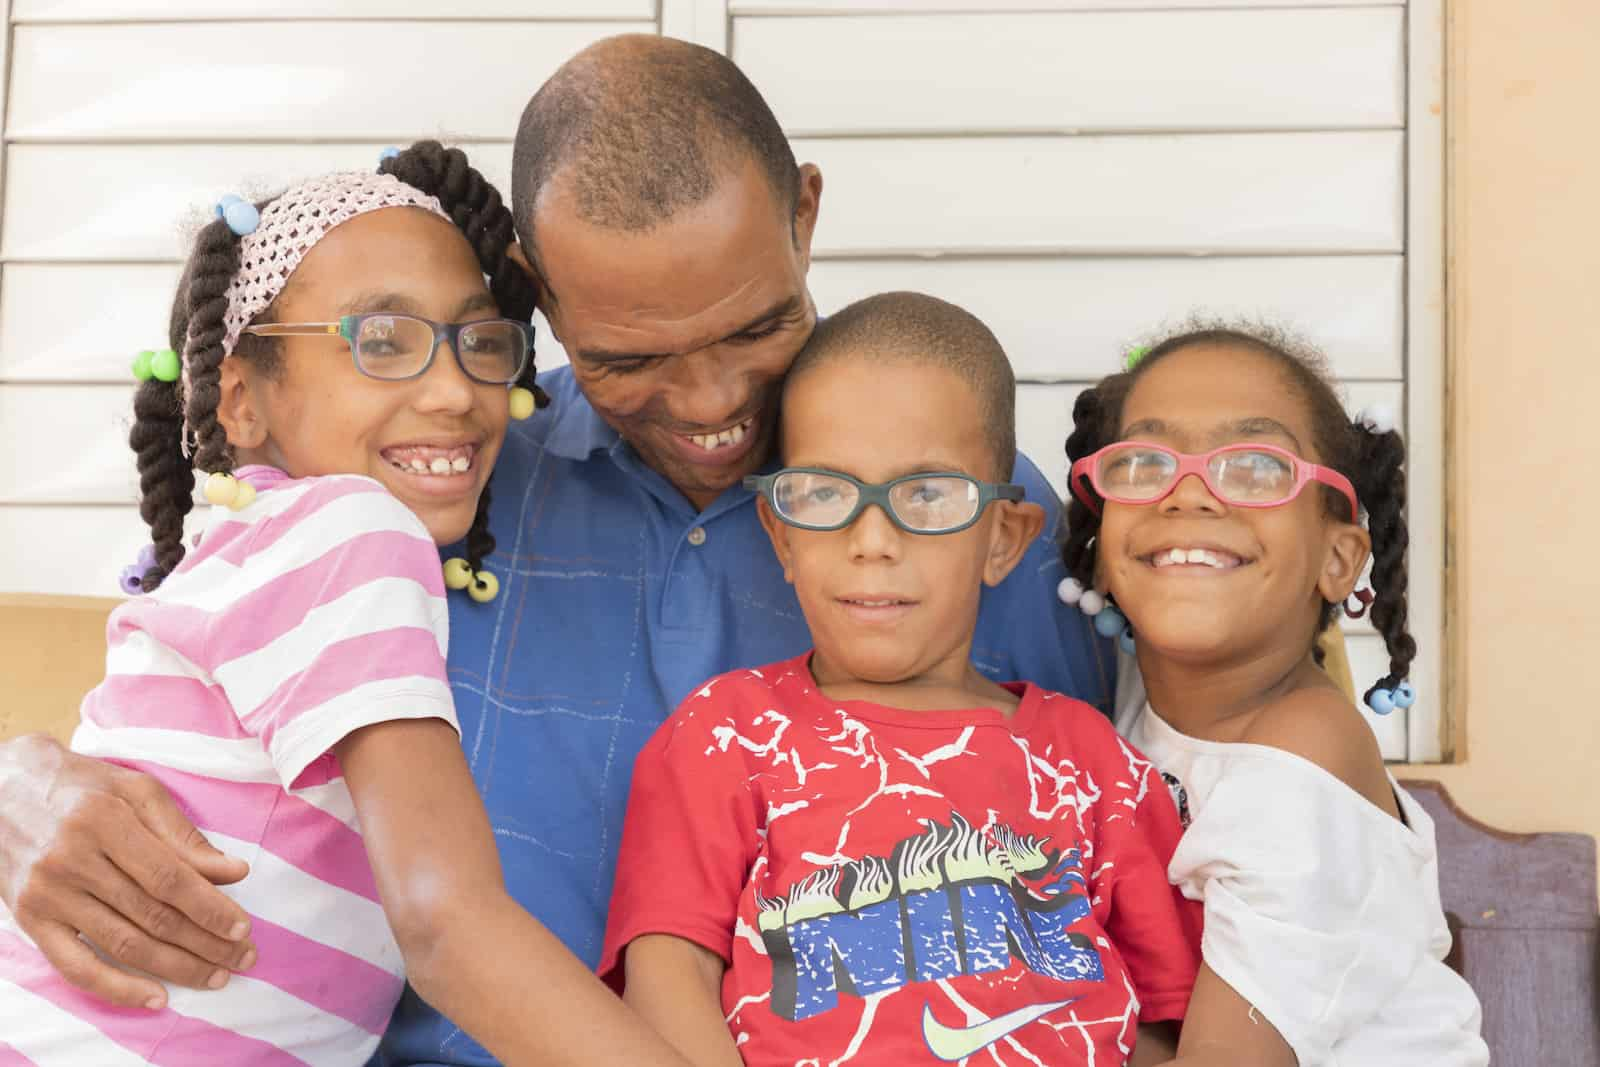 A man sits, hugging three children with glasses.